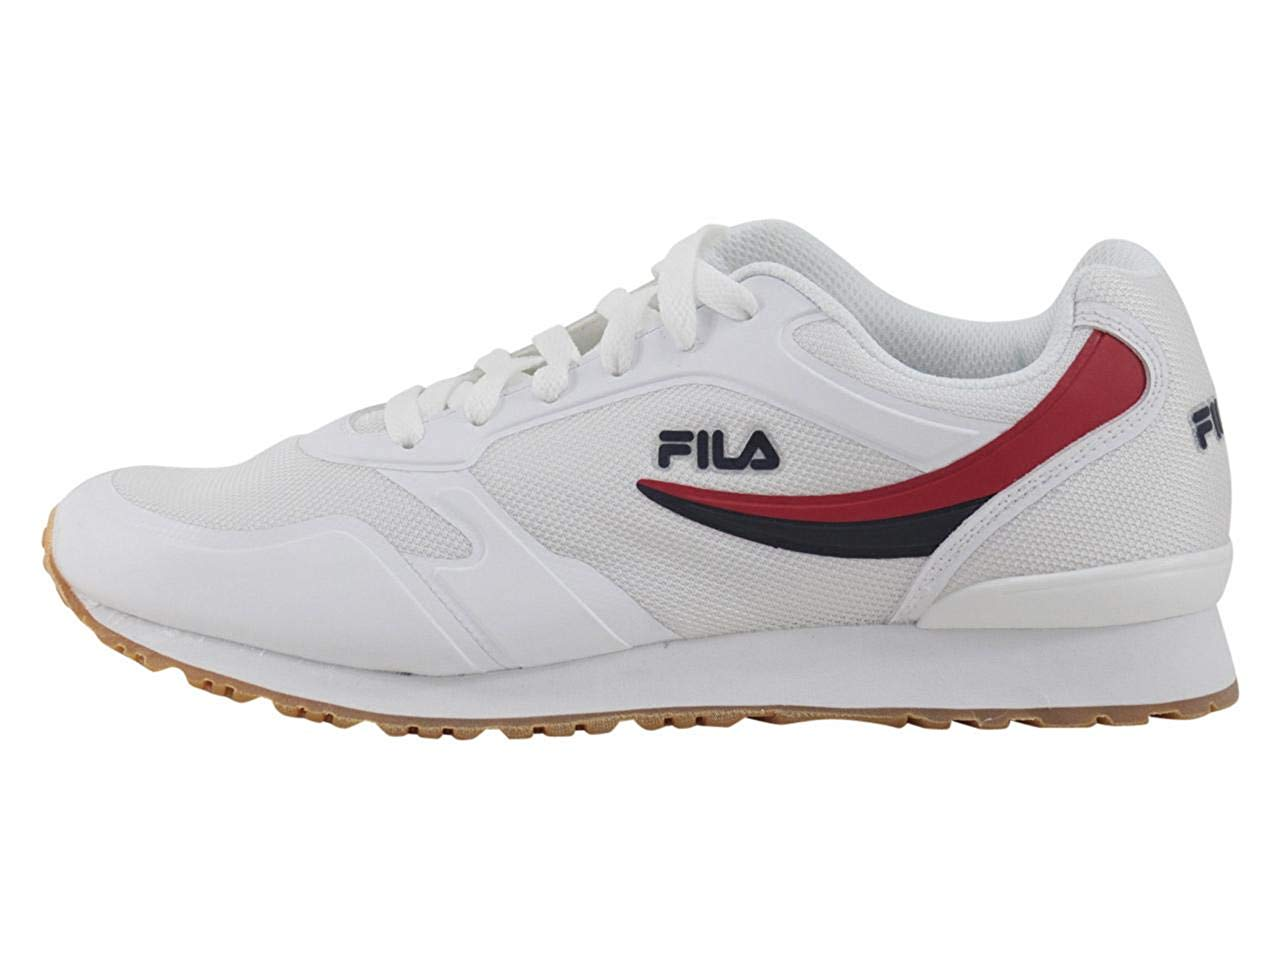 3f4cc035a17a Fila Men s Forerunner-18 White Navy Red Sneakers Shoes